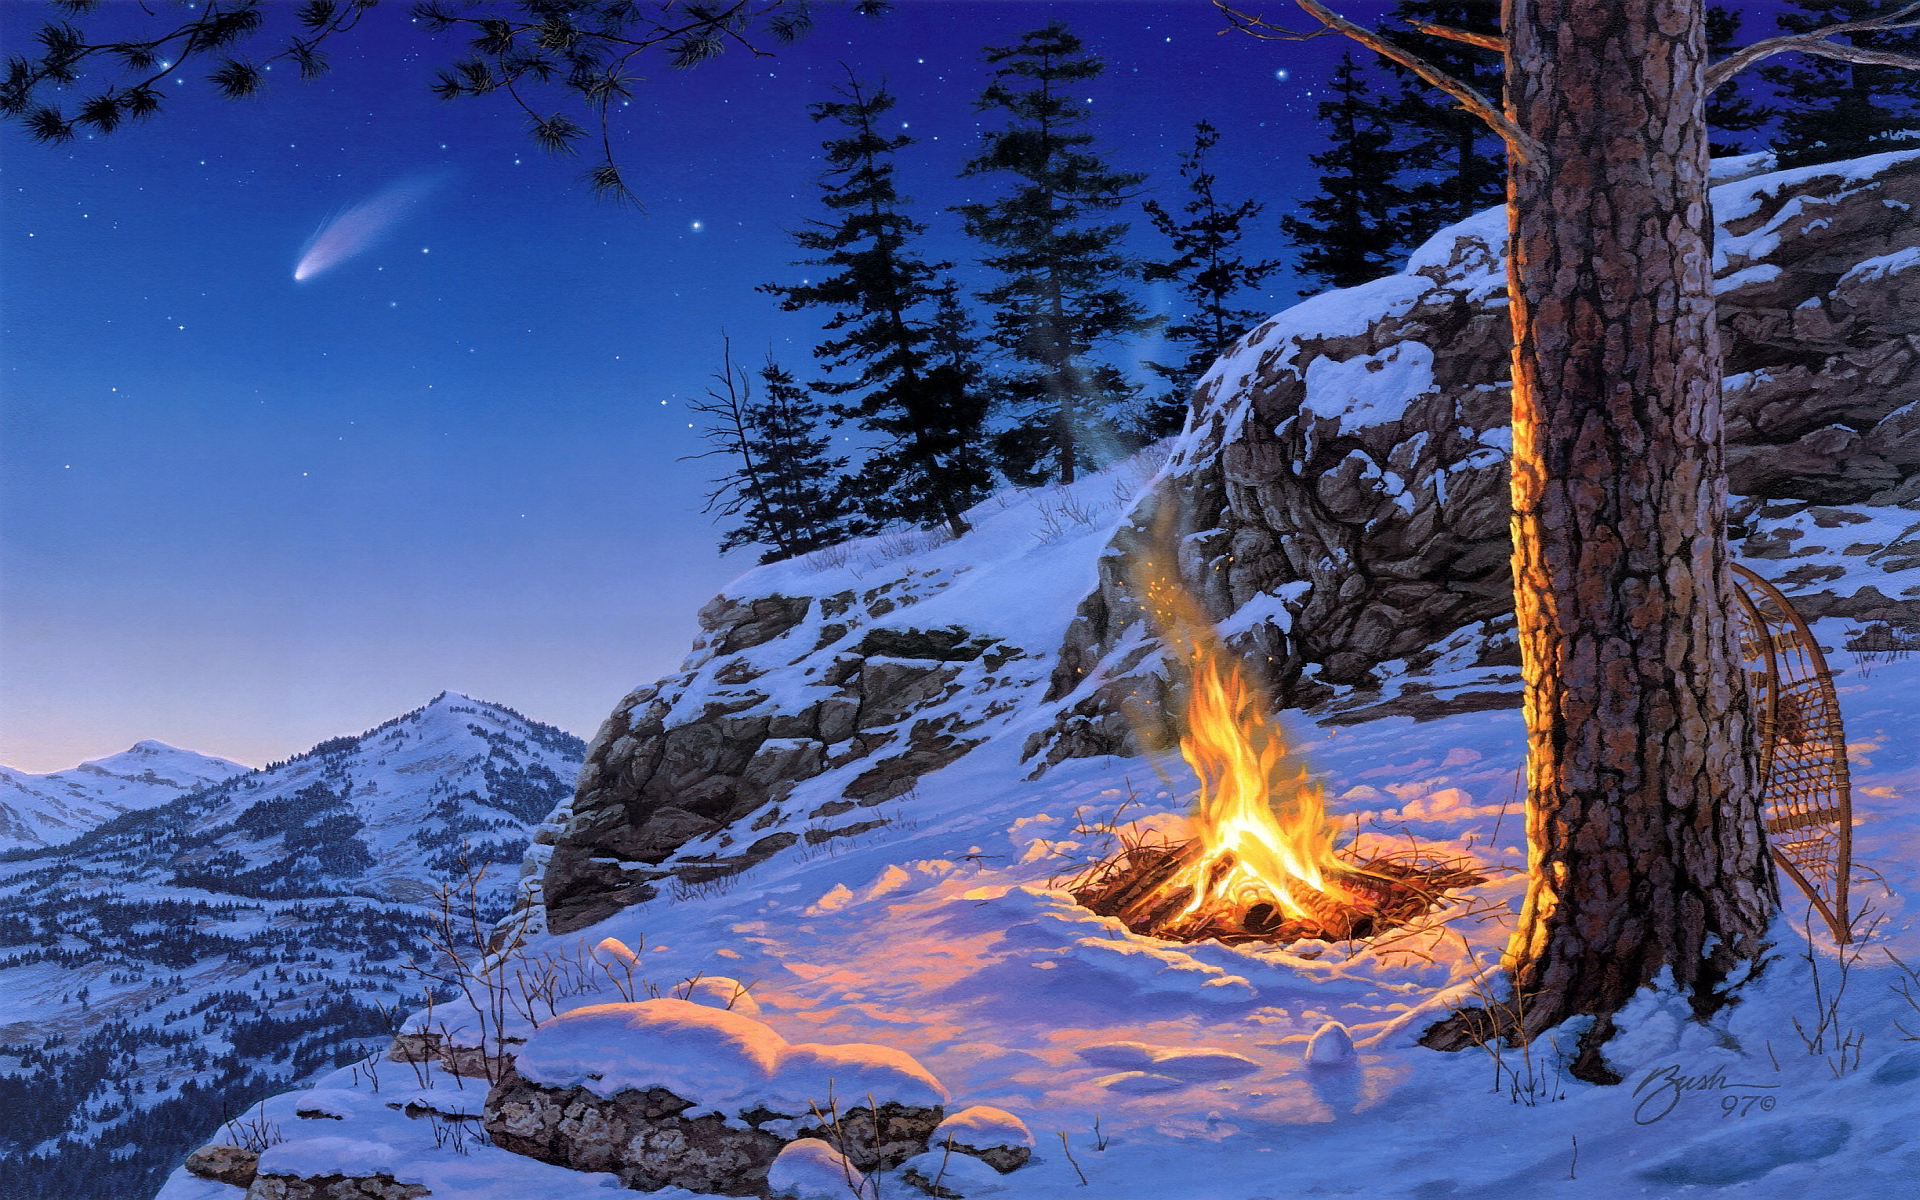 Winter campfire art